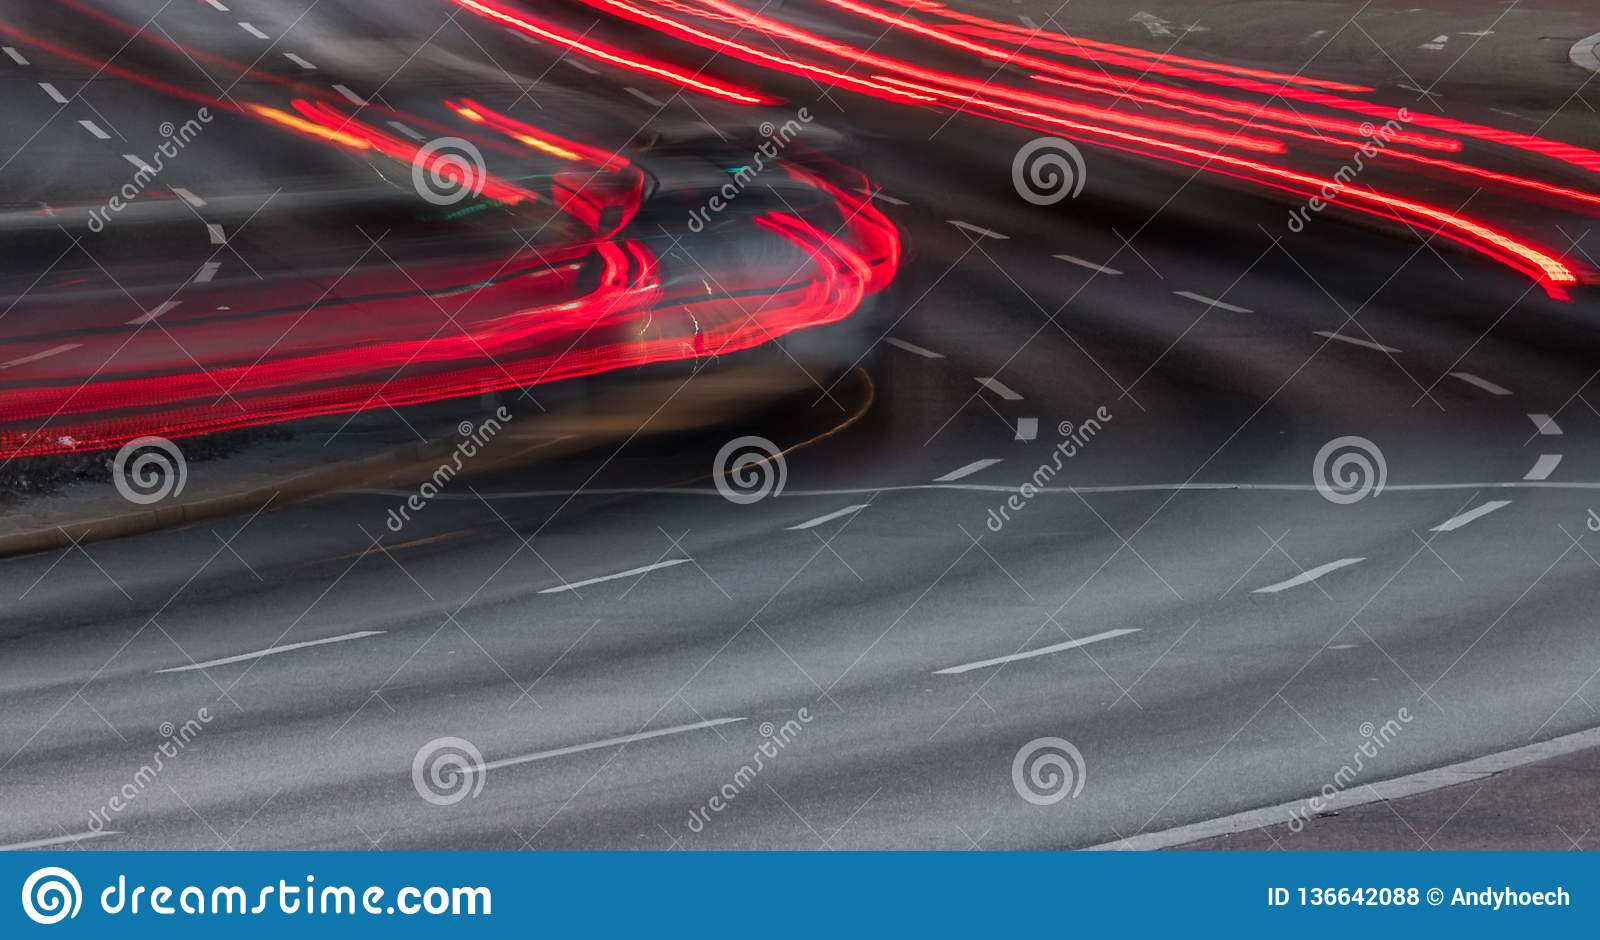 The red taillights on the three lane road